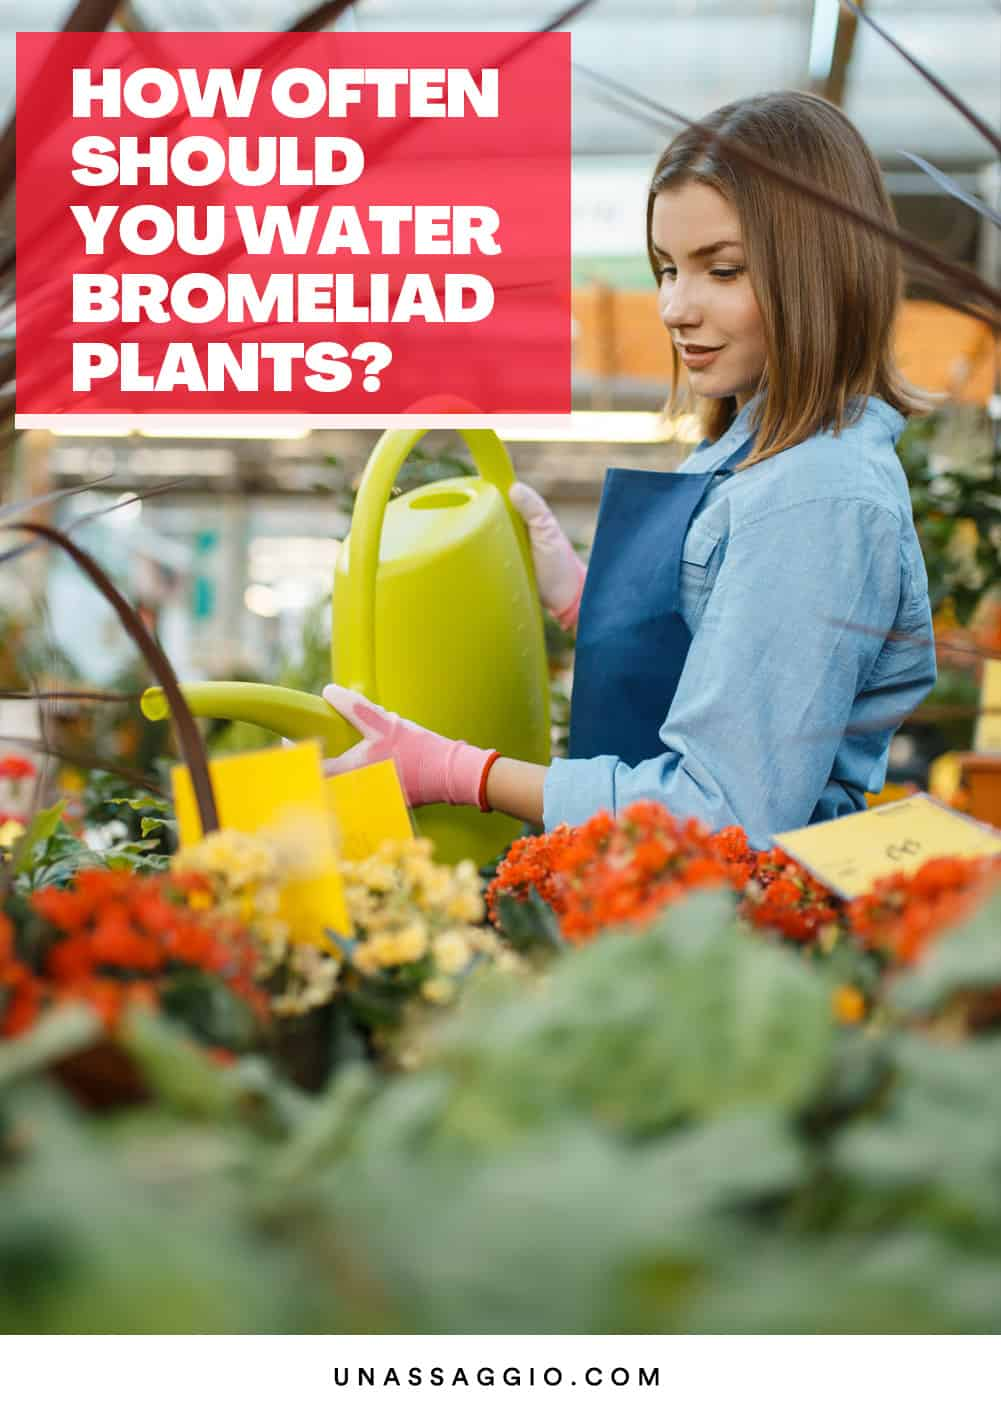 How Often Should You Water Bromeliad Plants?